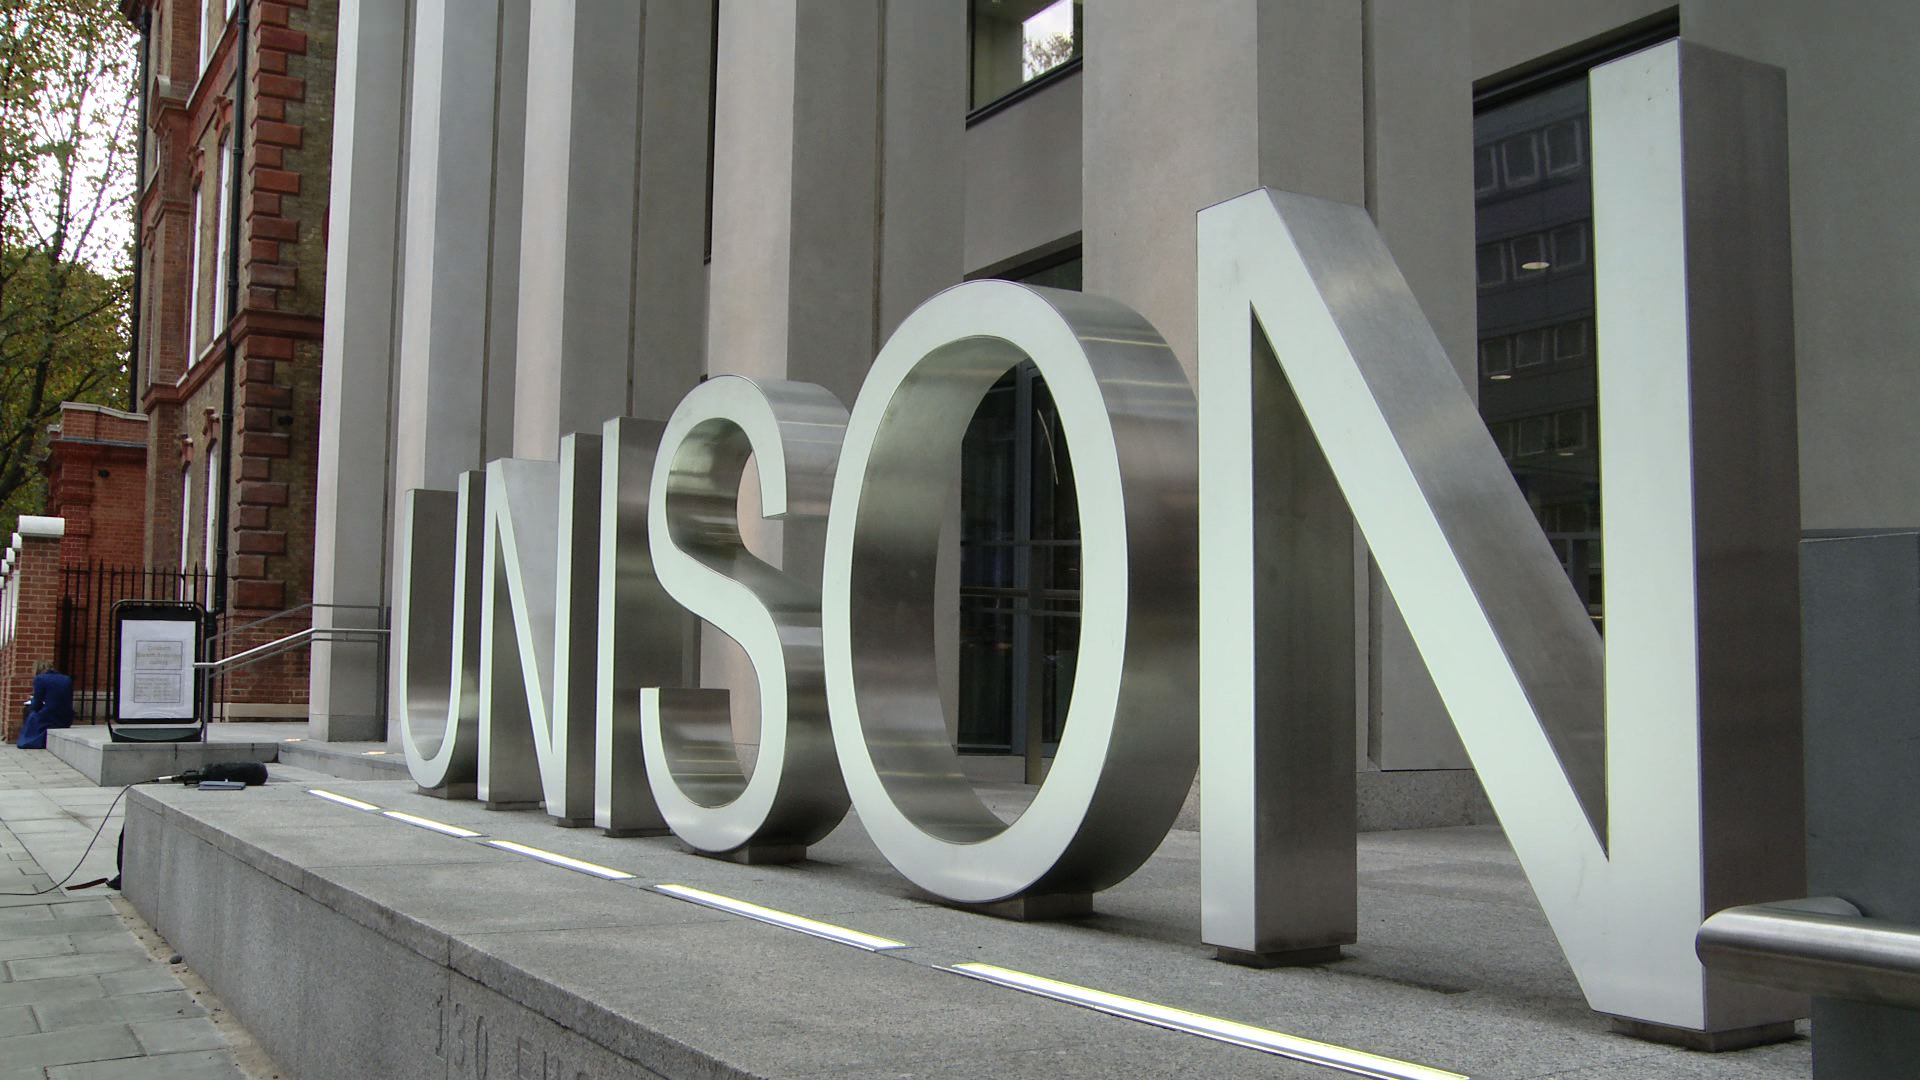 unisons judicial review